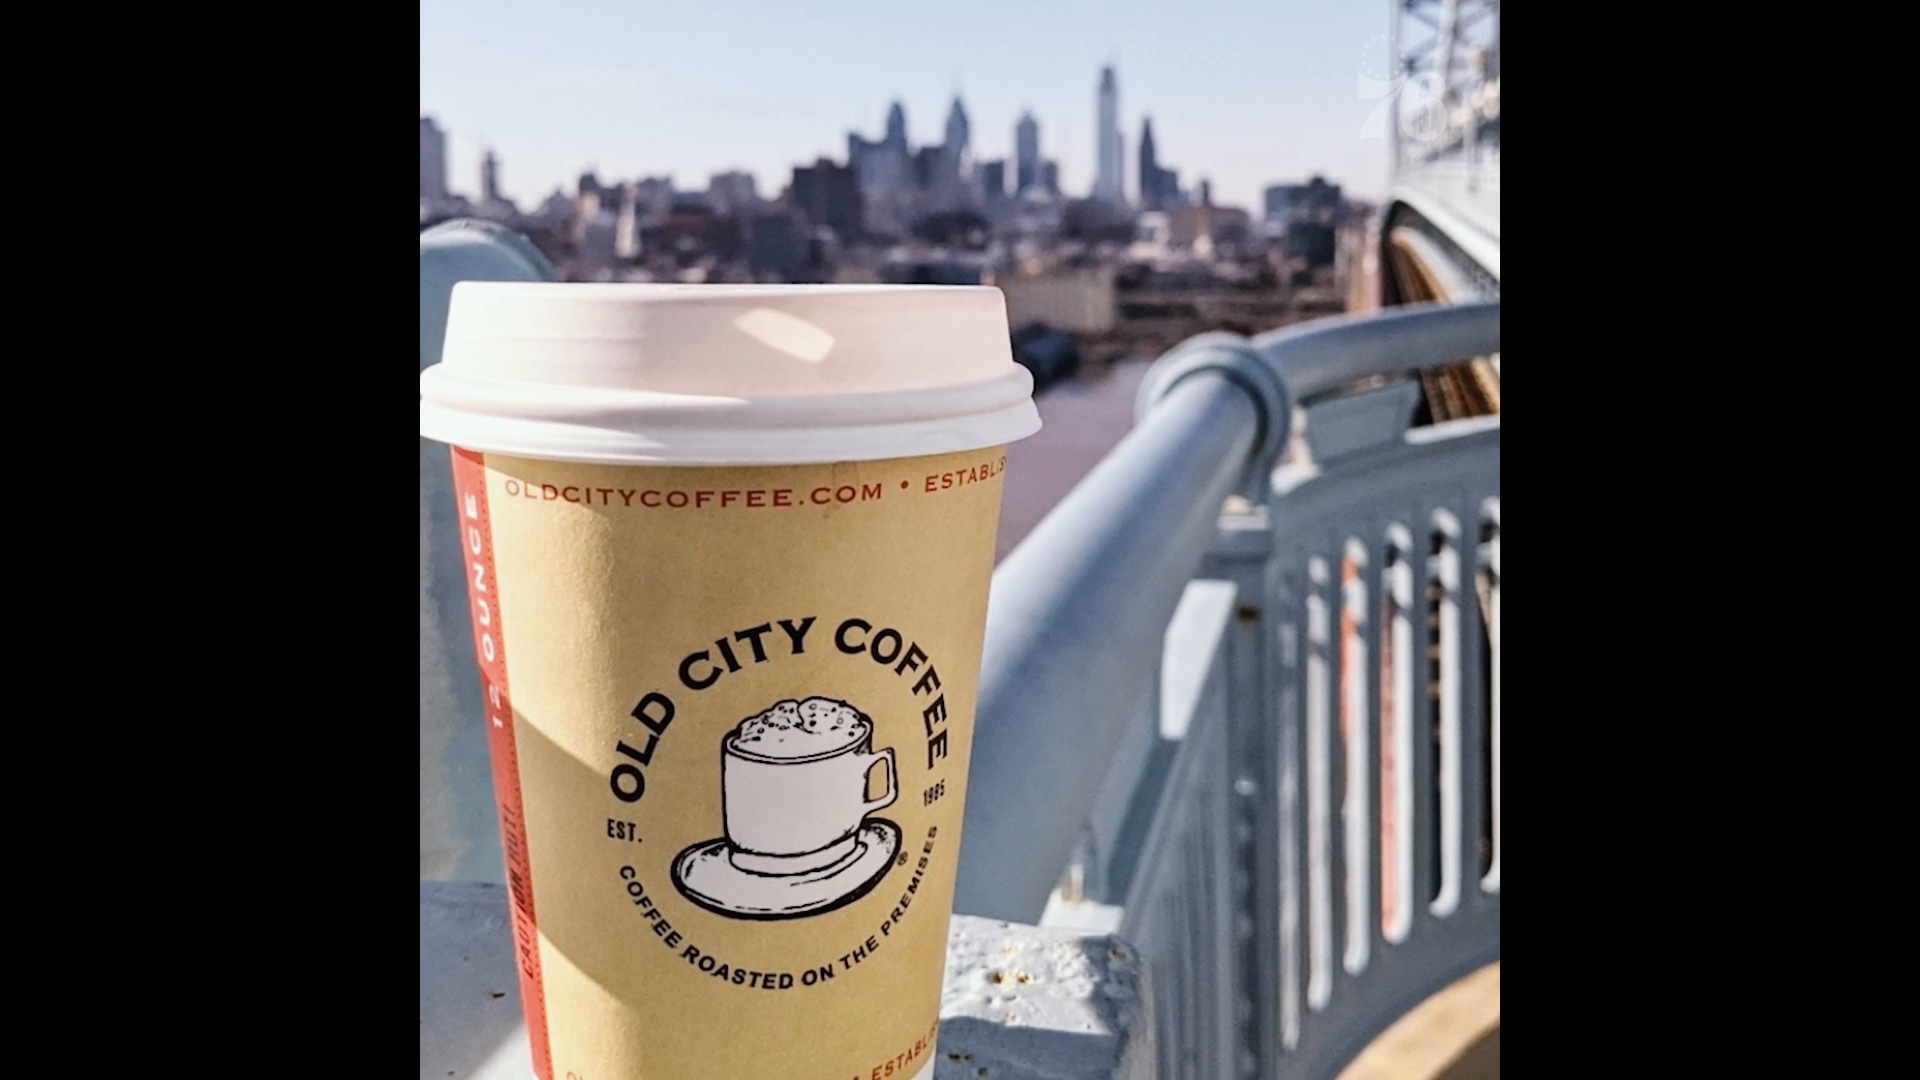 Old City Coffee | Spirit of Small Business